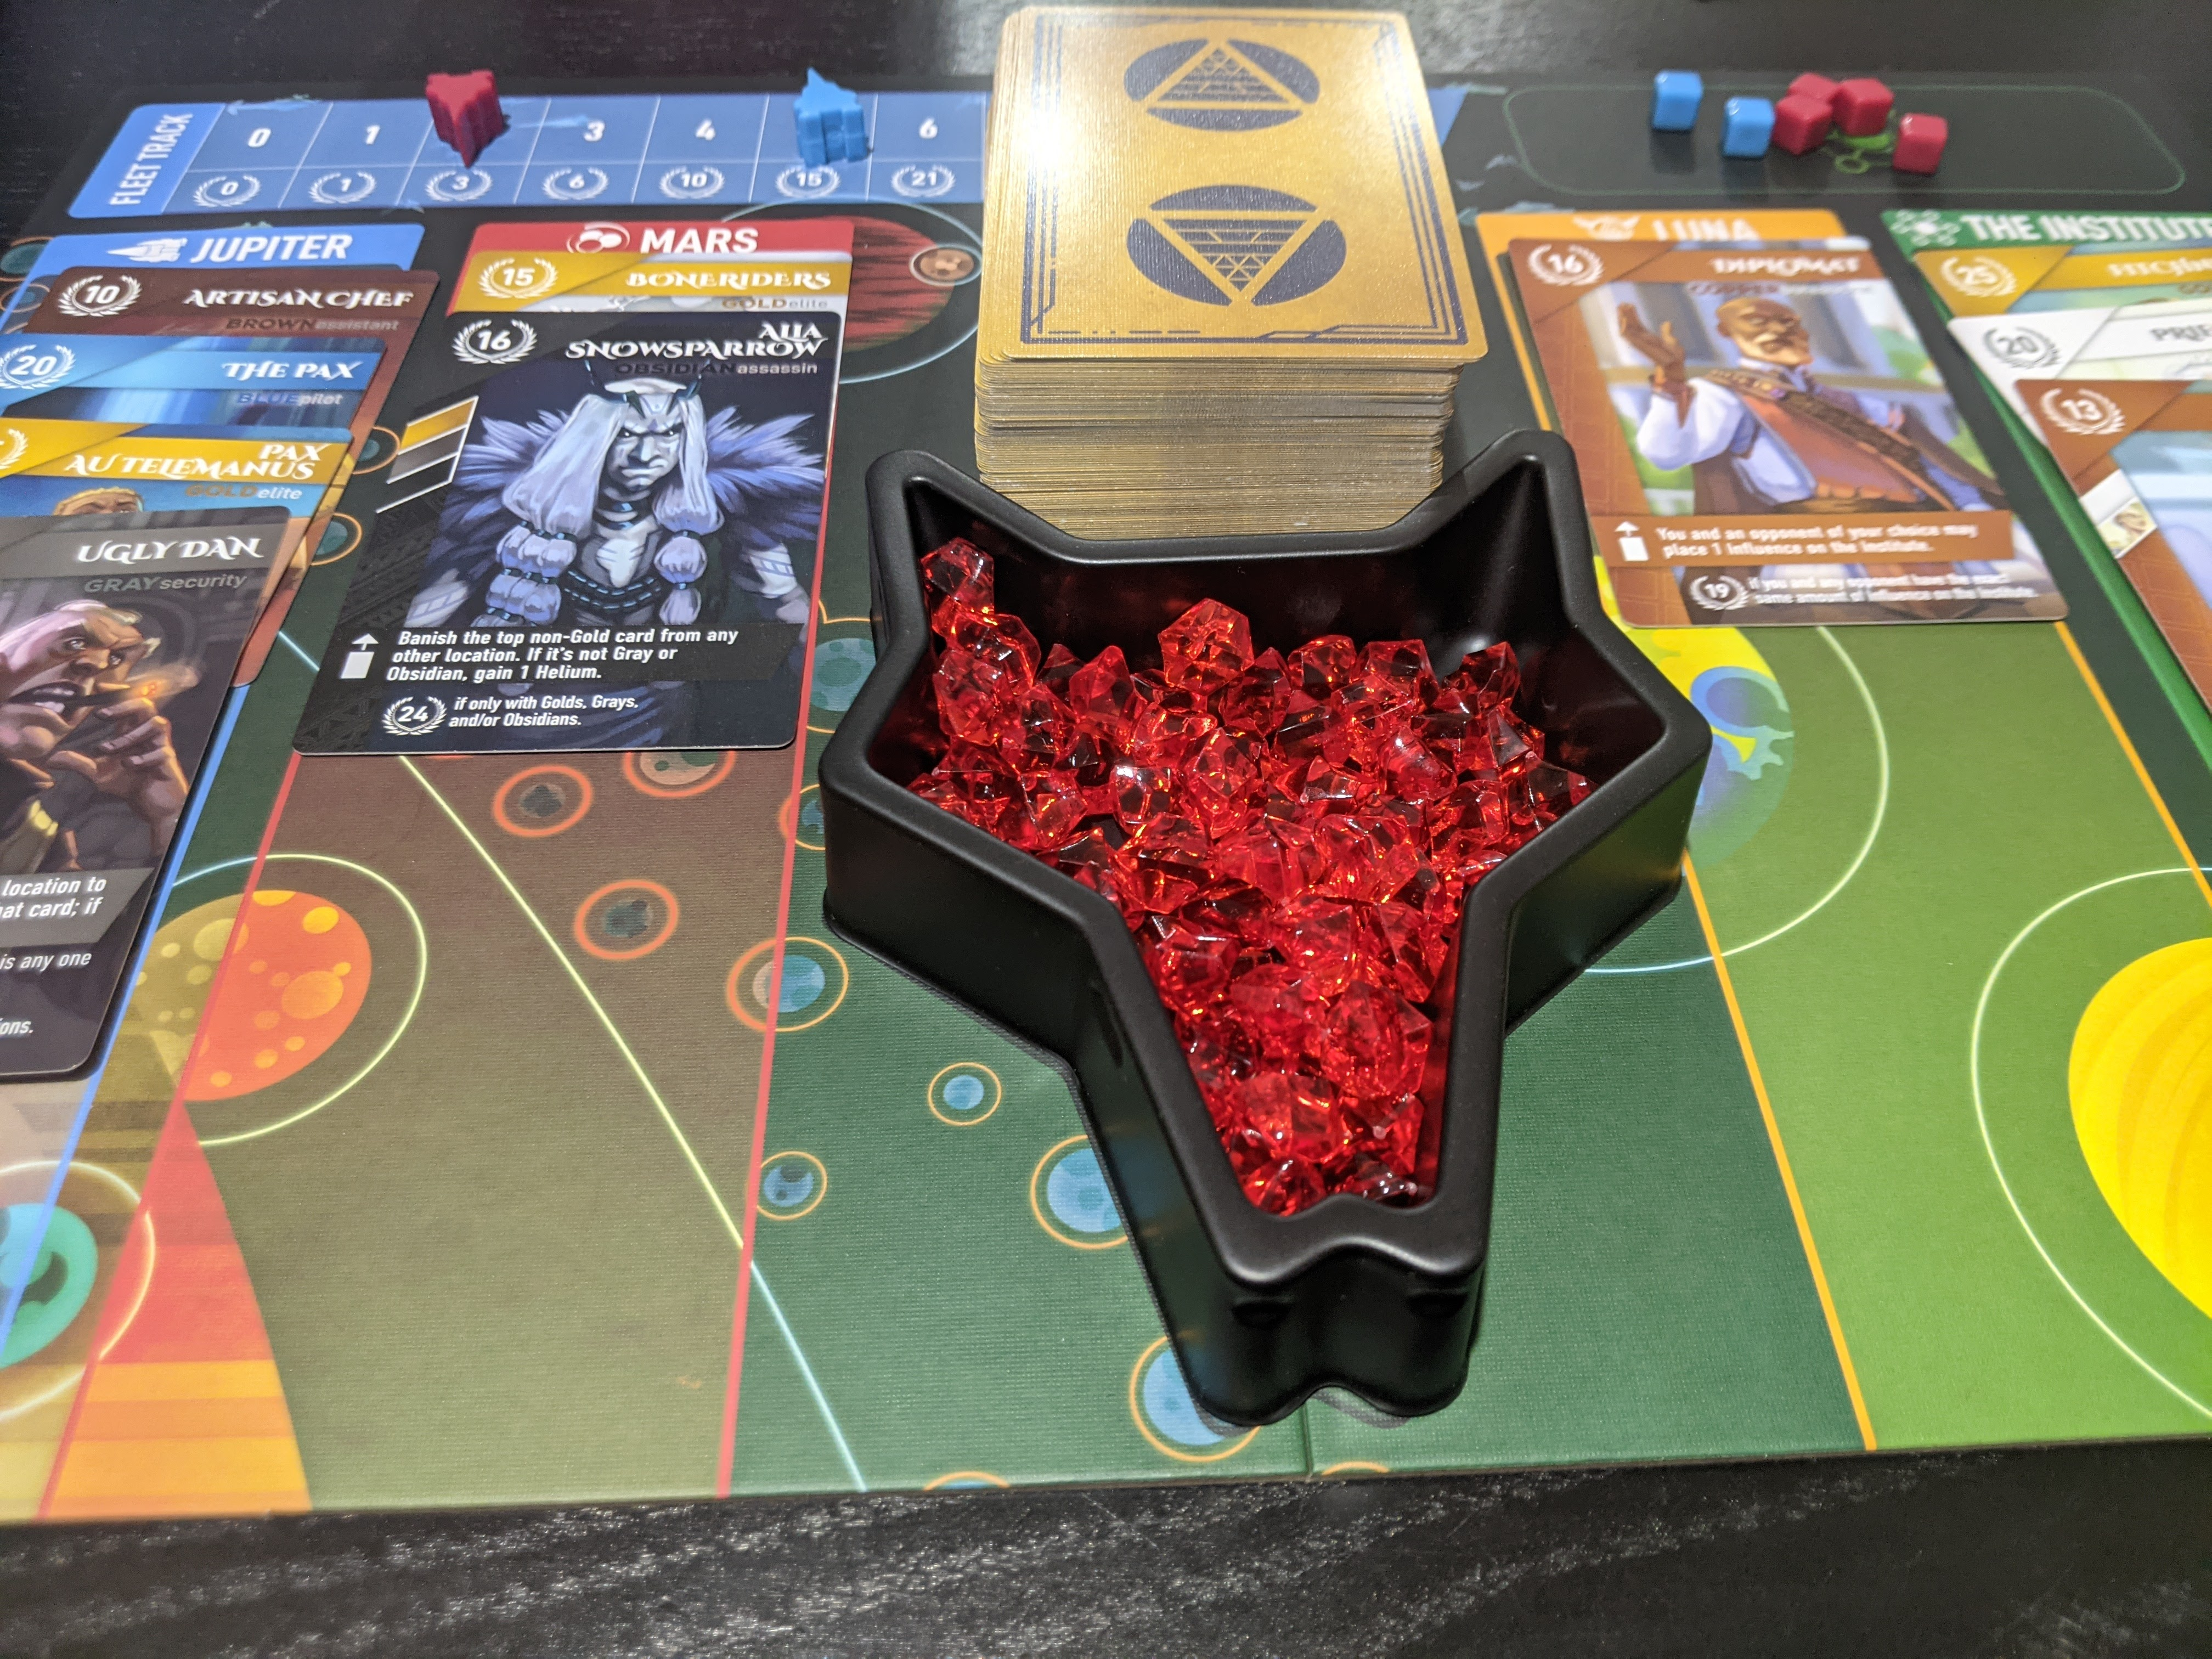 In the middle of a game of Red Rising, the board shows four columns (locations) with cards stacked in each. Front and centre is the container of Helium tokens.